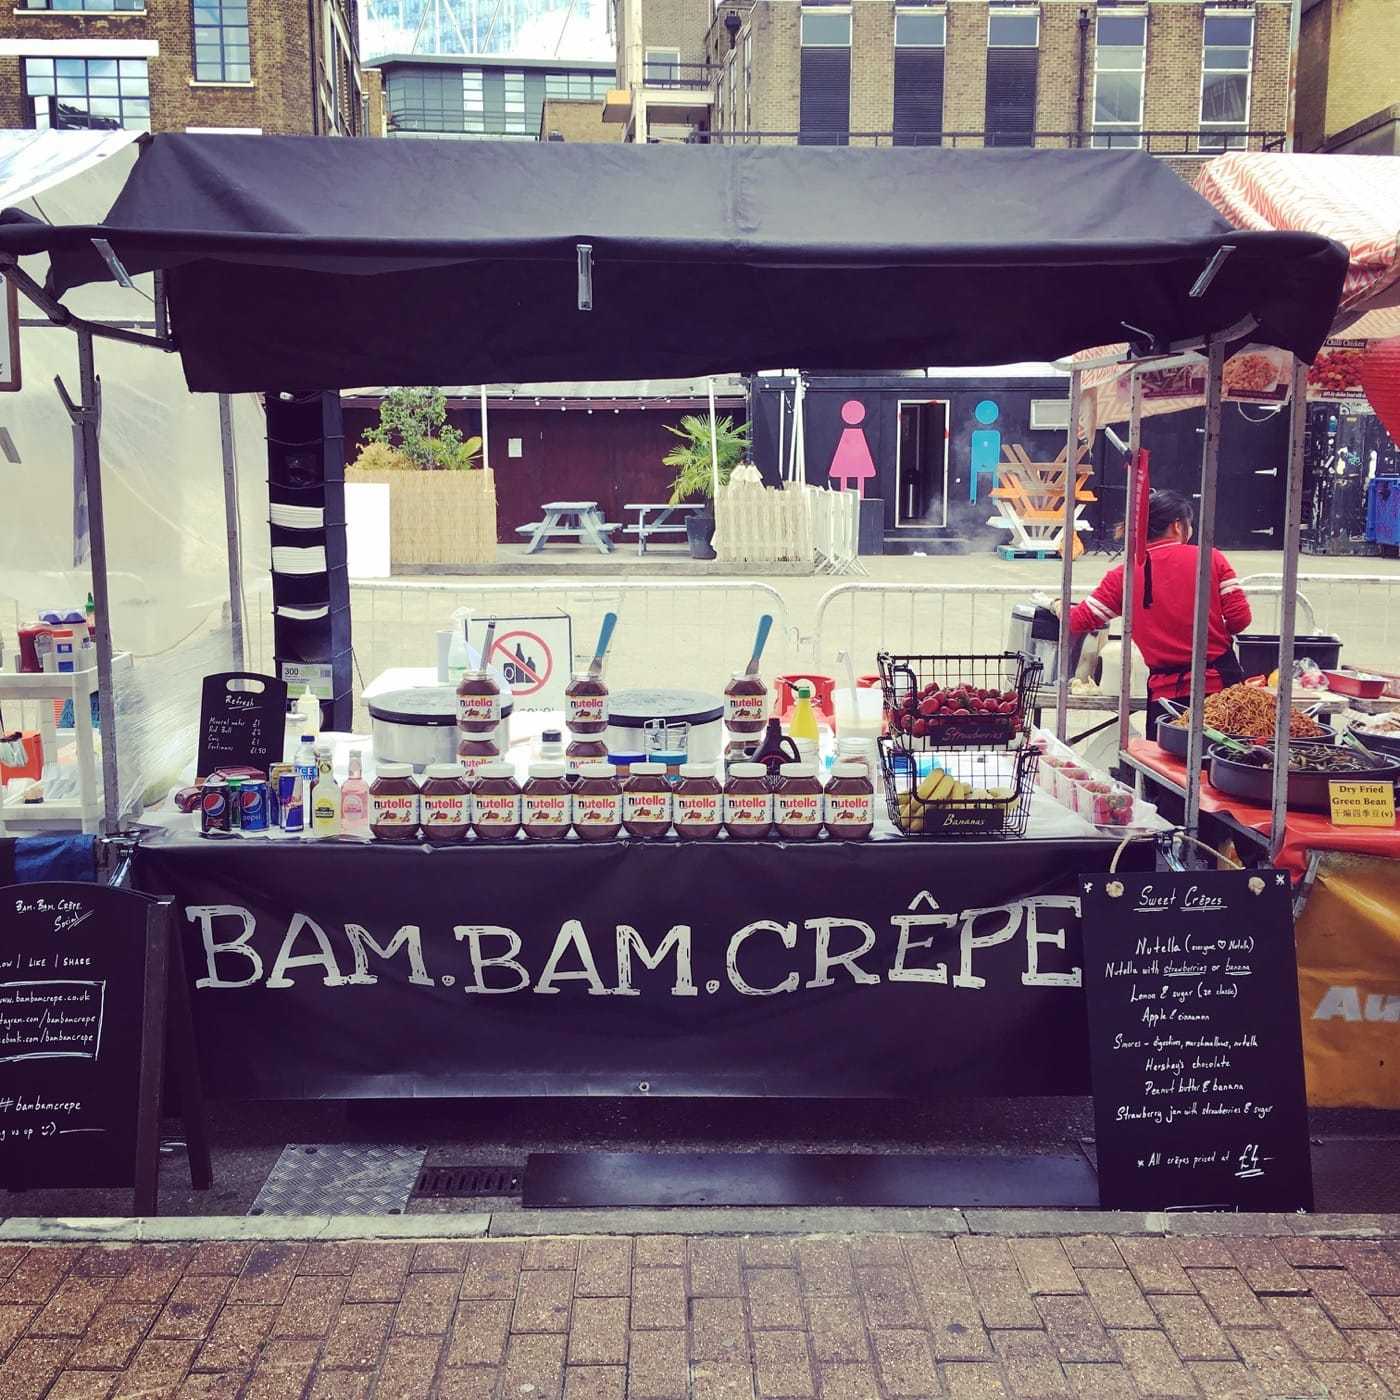 Feast-It-Bam-Bam-Crepe-Cambridge-Street-Food-Crepes-Mobile-Catering-Event-Caterer-Dessert-Book-Now-fifteen